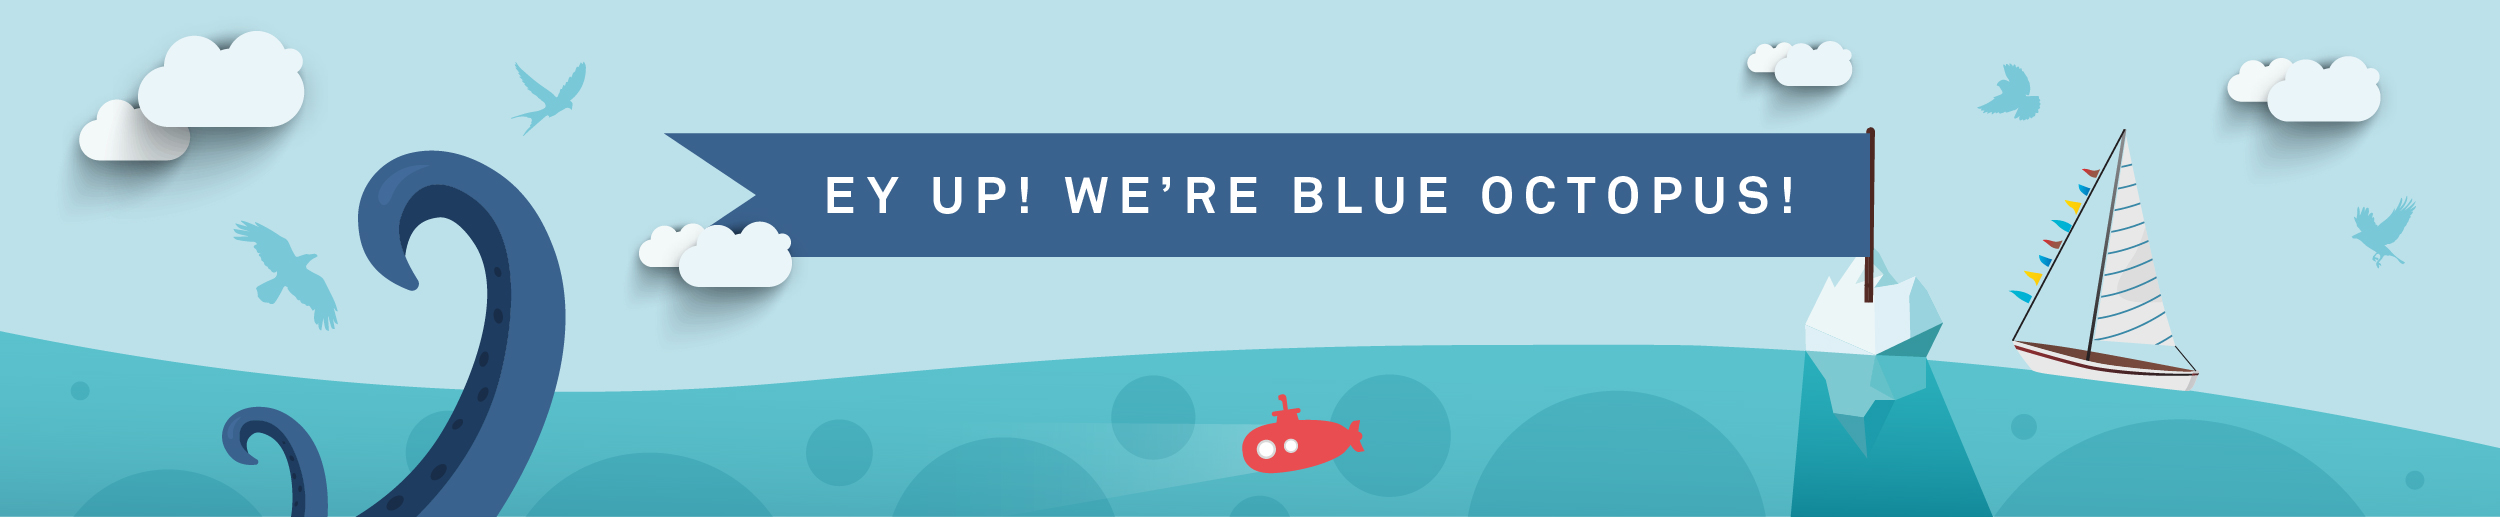 """<p>Finding the right people for your business can feel like swimming against the tide– but it doesn't have to. At Blue Octopus Recruitment, we're here to make things easy. We're a friendly bunch of recruitment professionals from sunny Yorkshire, who've developed an award-winning online recruitment solution that puts employers firmly in control (without all the hassle!).</p> <p>We advertise a wide range of roles across a wide range of industries, so it might just be that we have something perfect for you! Helping candidates through the recruitment process is at the heart of what we do, driven by our top-notch service team. When you apply with Blue Octopus, we keep you informed every step of the way and have a bunch of materials to help you through the interview process too.</p> <p>To check out our current vacancies, head over to<a href=""""https://www.blueoctopus.co.uk/vacancies"""">https://www.blueoctopus.co.uk/vacancies</a>.</p>"""